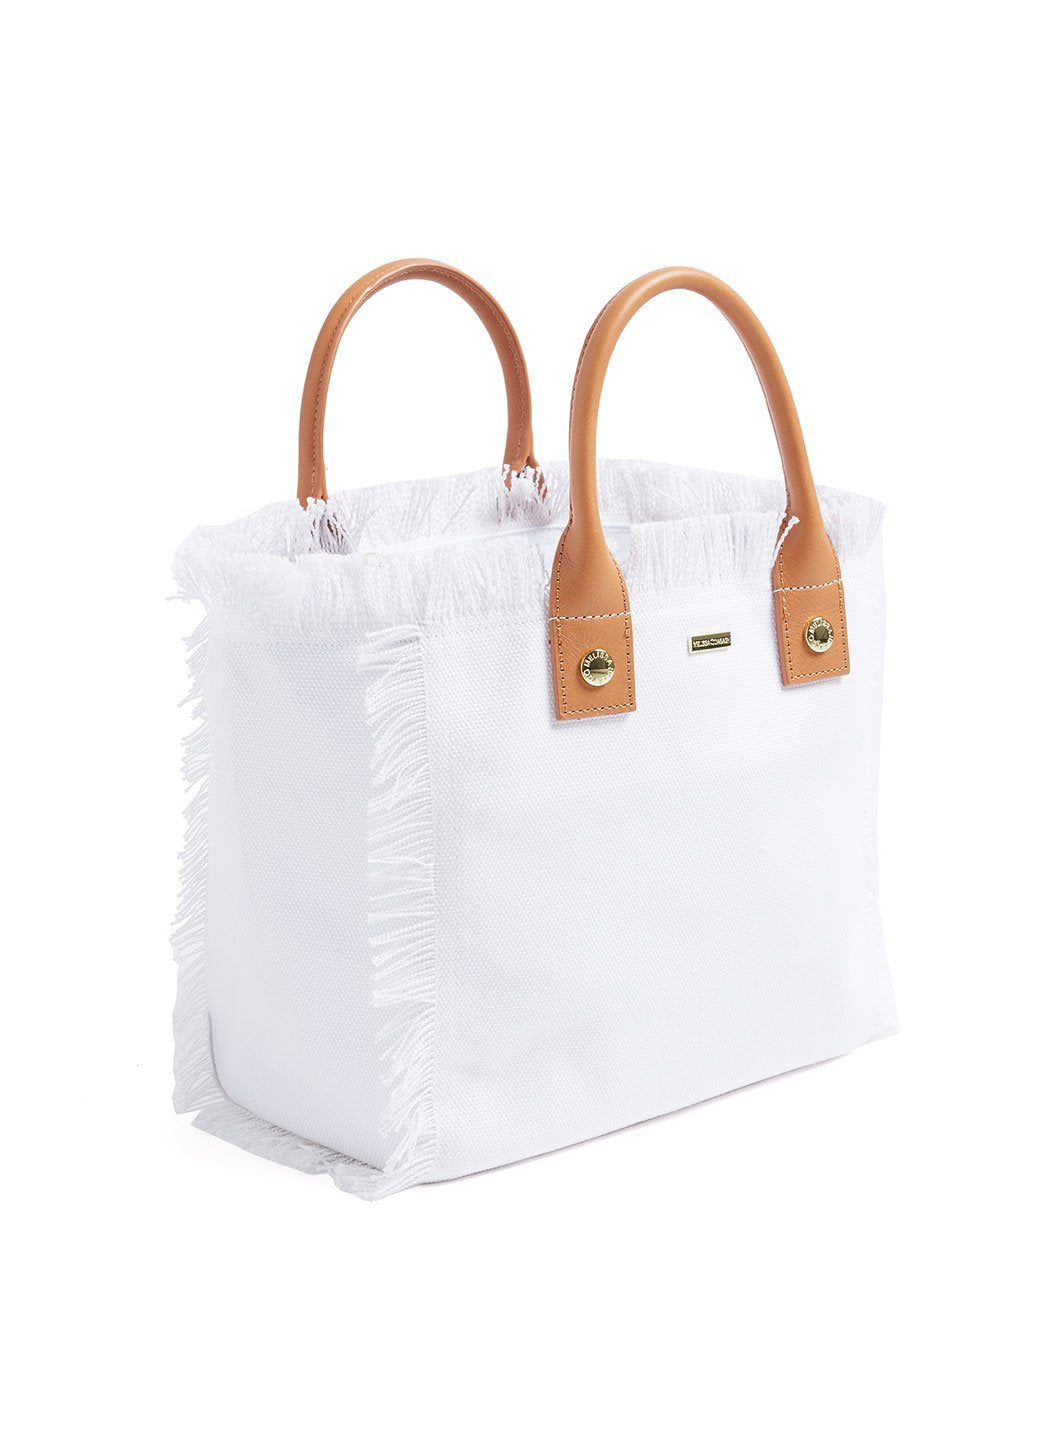 porto cervo mini beach tote white 2 2018